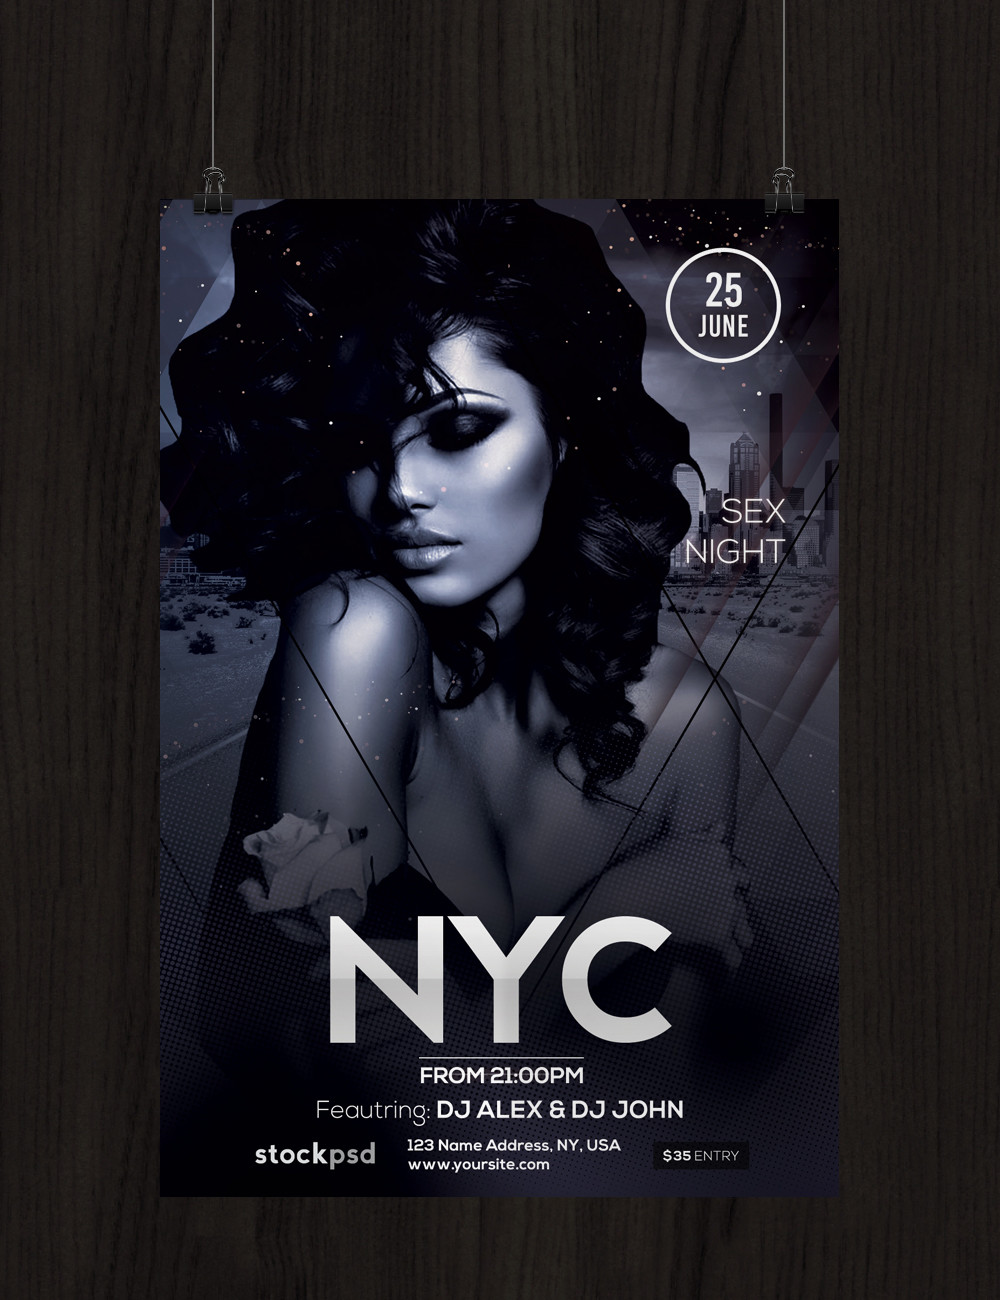 nyc download free psd flyer template stockpsd